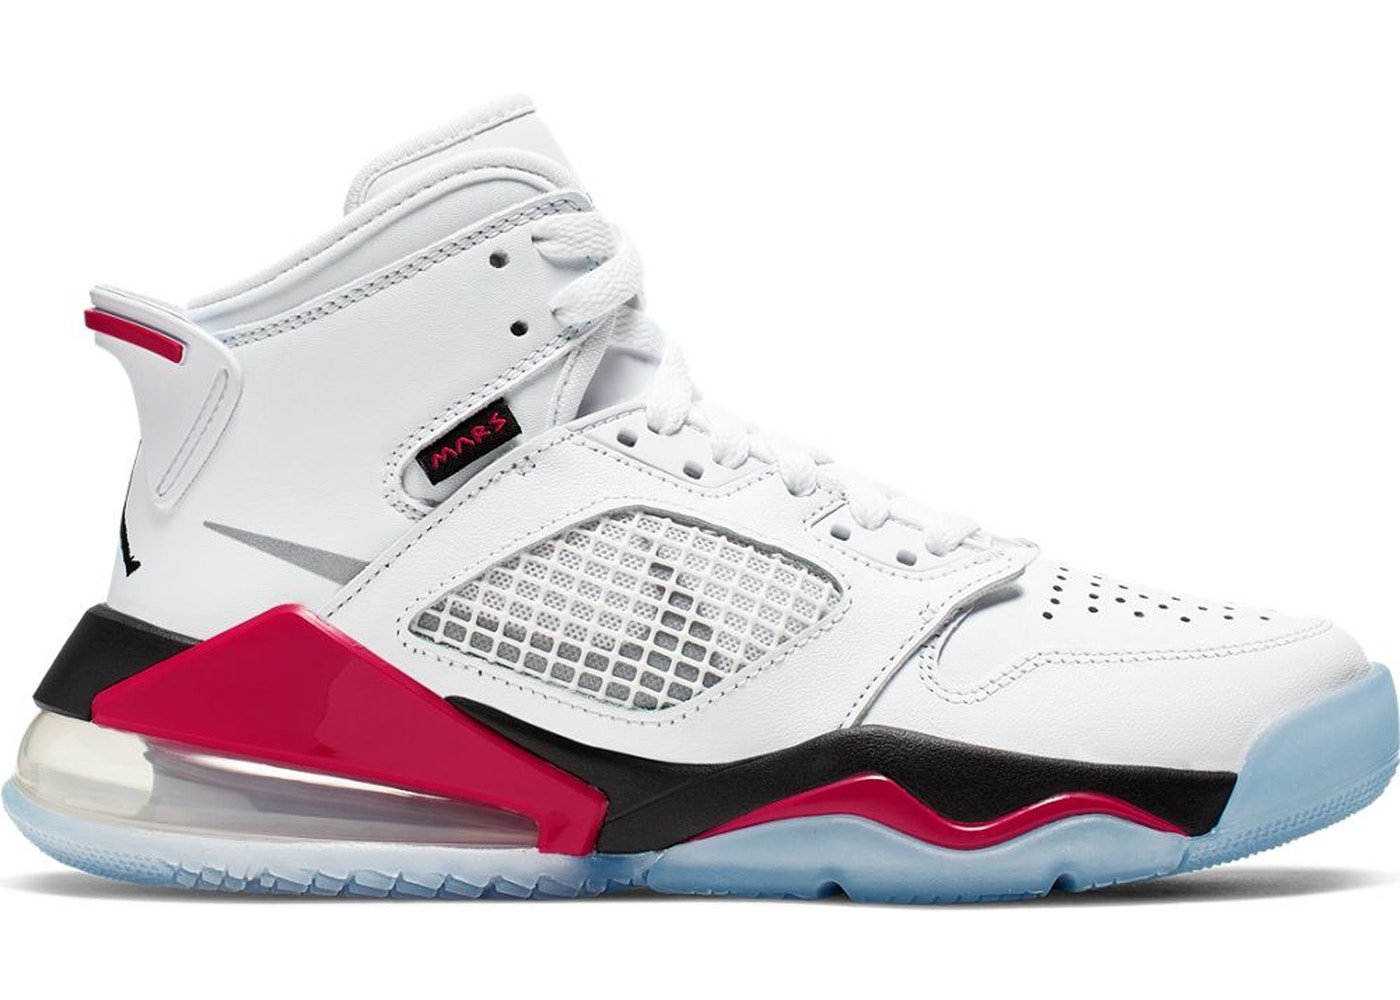 best service 59afd bf8d0 Jordan Mars 270 White Fire Red (GS)